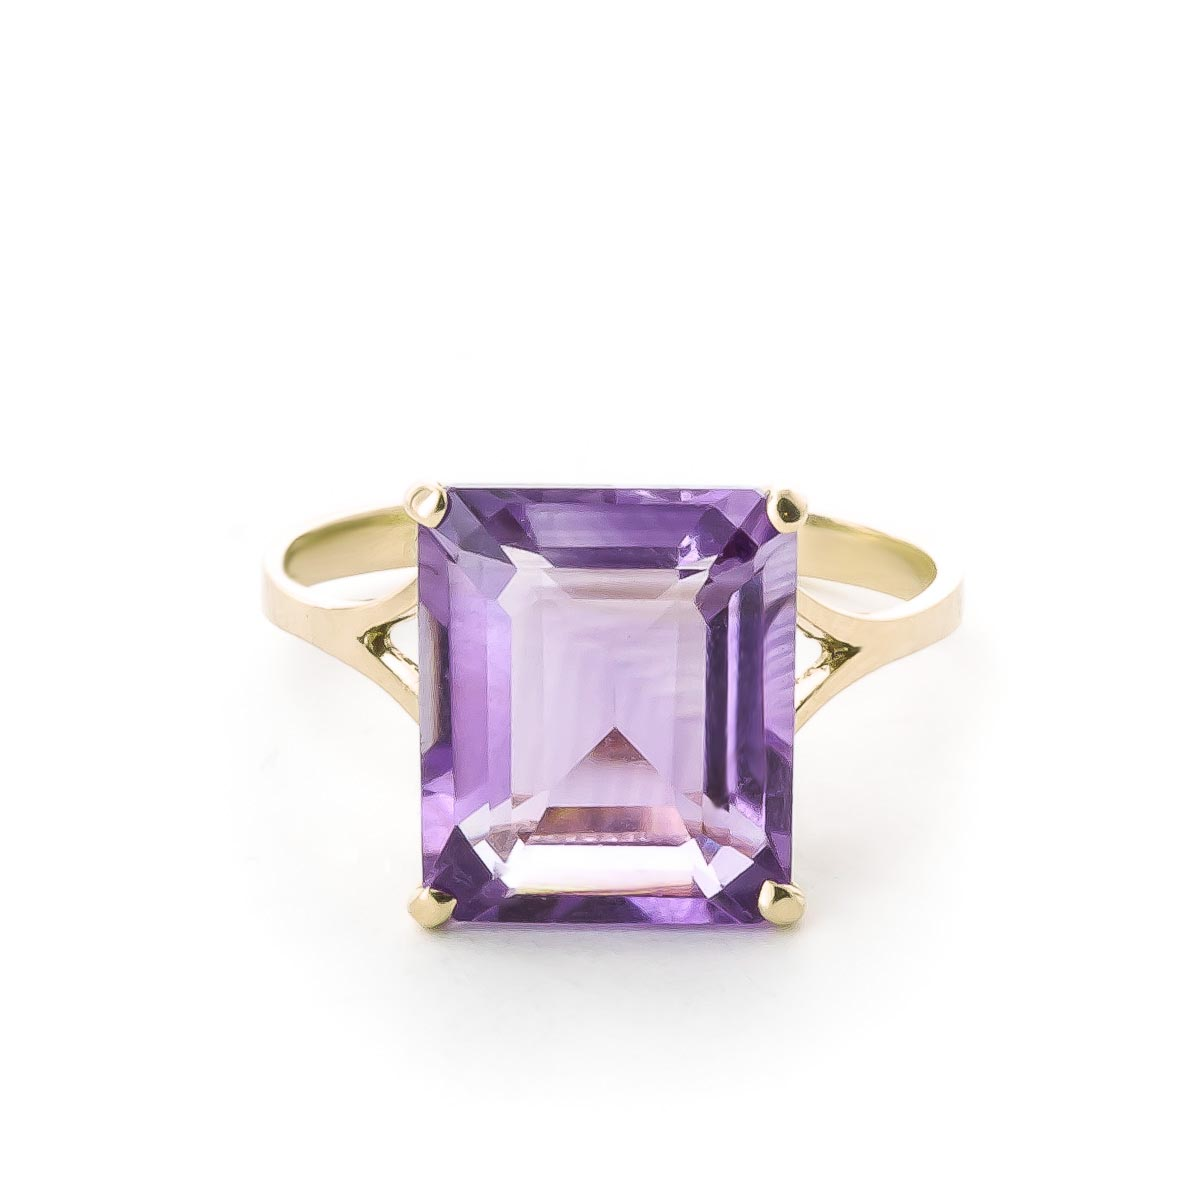 Image of Amethyst Auroral Ring 6.5 ct in 18ct Gold